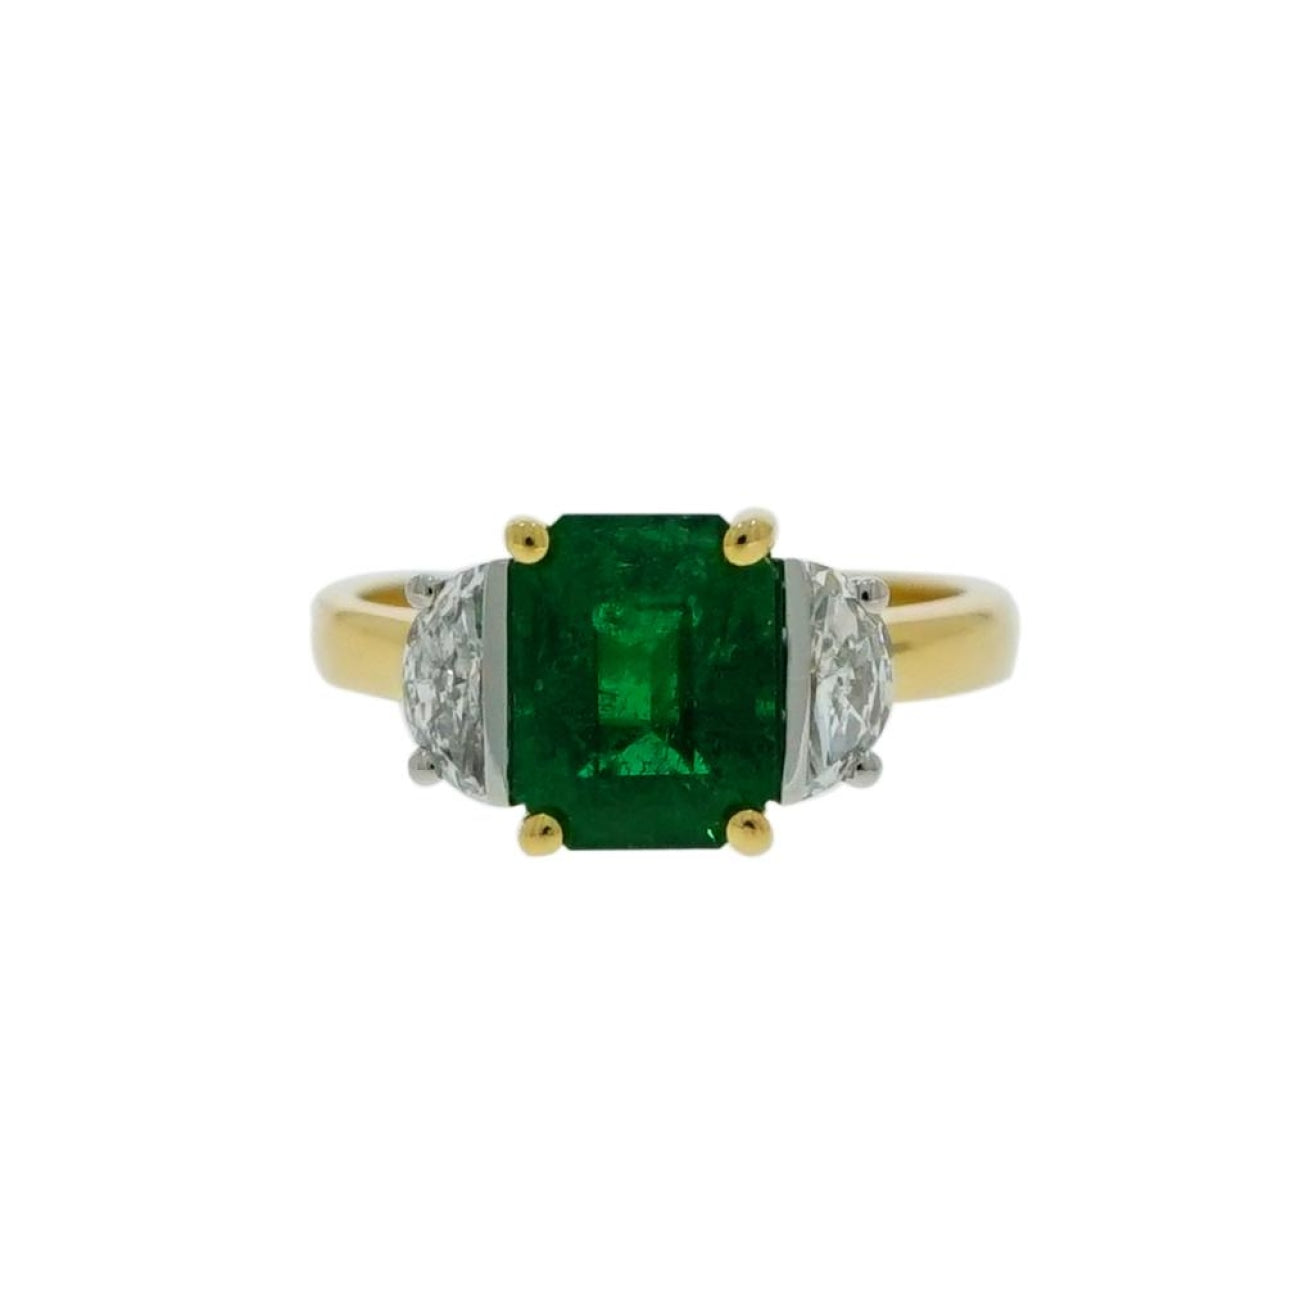 Estate Jewelry Estate Jewelry - Emerald and Diamond Yellow Gold 3 Stones Ring | Manfredi Jewels